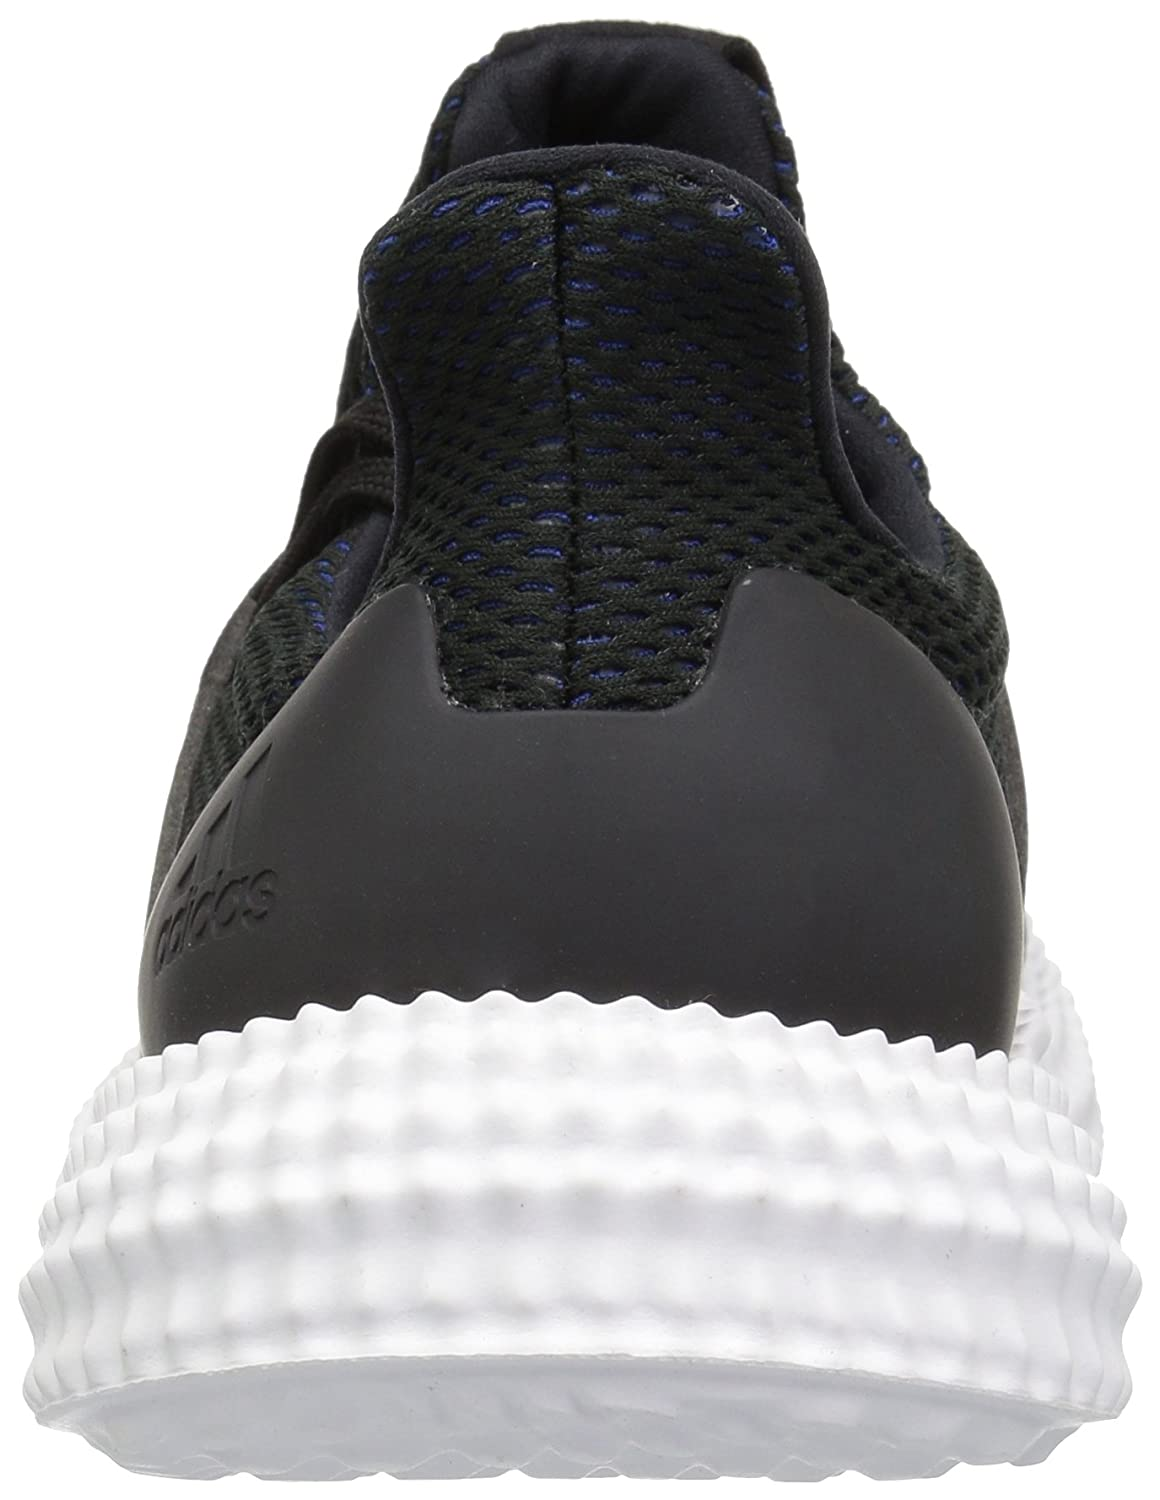 premium selection 93f22 5a464 Adidas Originals Adidas Athletics 24 7 TR M Cross Trainer Core Black   Core  Black   Hi-res Blue